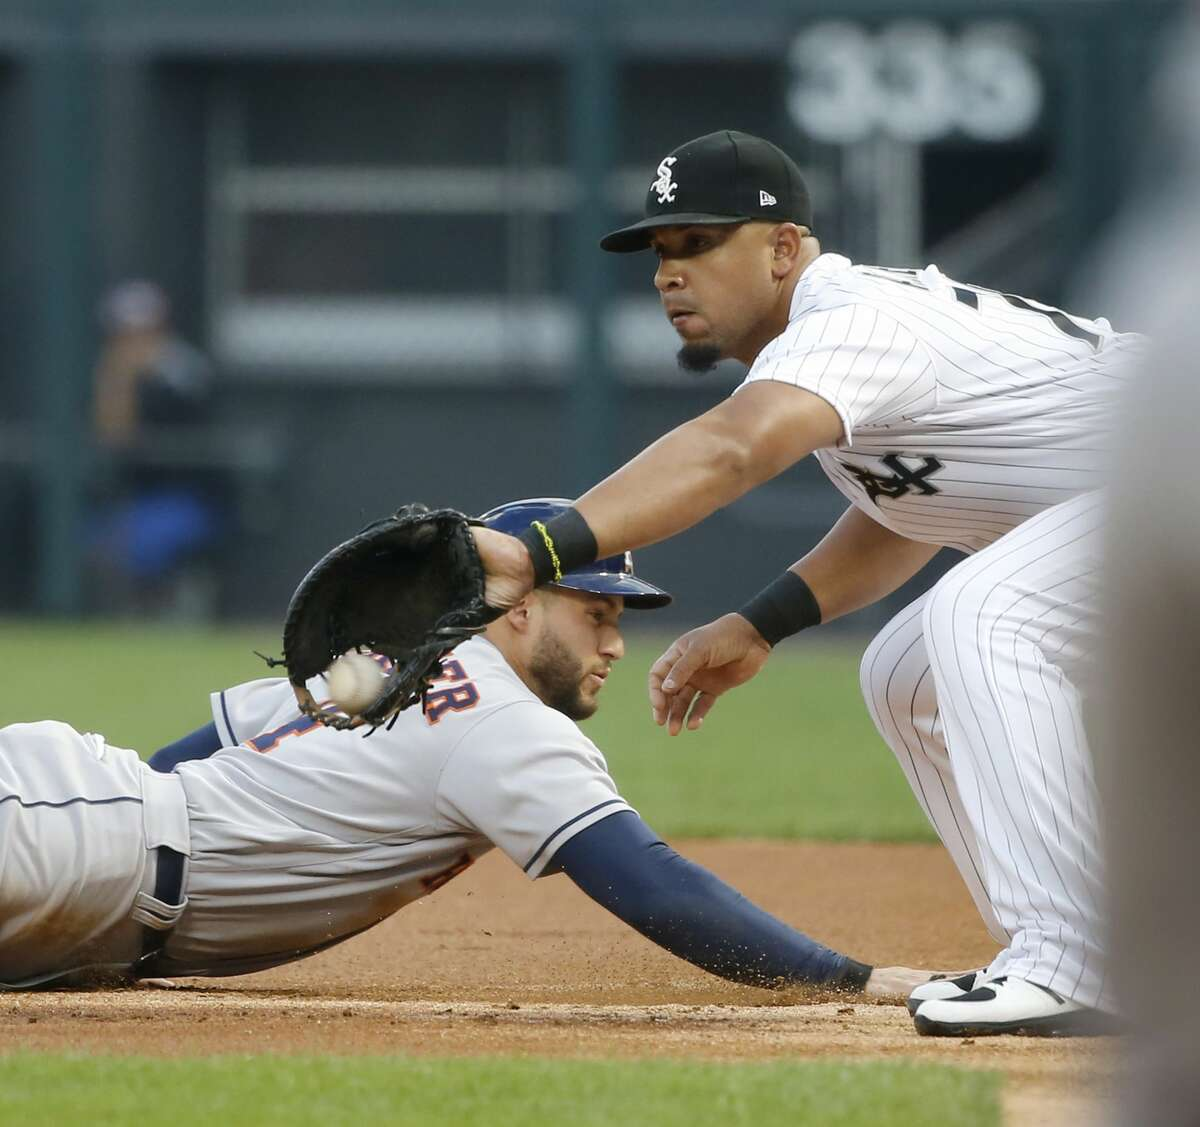 Houston Astros' George Springer, left, dives safely back to first on a pick off attempt by Chicago White Sox starting pitcher Miguel Gonzalez to first baseman Jose Abreu during the first inning of a baseball game Wednesday, Aug. 9, 2017, in Chicago. (AP Photo/Charles Rex Arbogast)